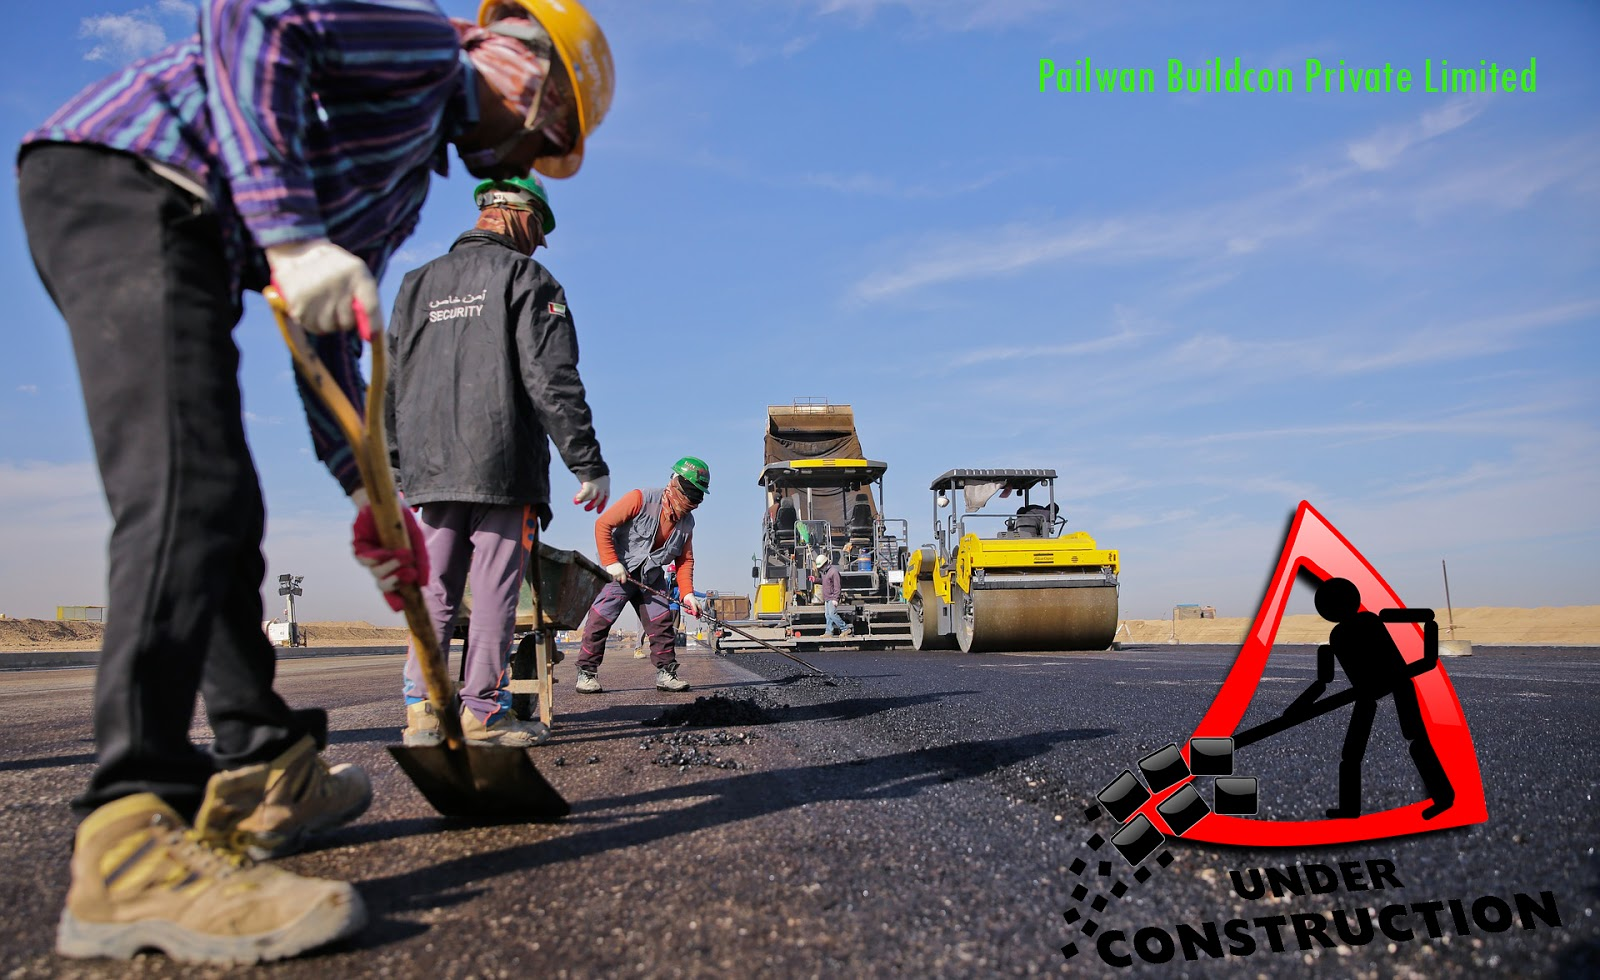 Services of Pailwan Buildcon Private Limited - Best Road Construction Company in Jamakhandi Bagalkot Karnataka,Best Road Contractor in Jamakhandi Bagalkot Karnataka,Best Building Contractors in Jamakhandi Bagalkot Karnataka,Best Civil Contractors in Jamakhandi Bagalkot Karnataka,Best Contractors in Jamakhandi Bagalkot Karnataka,Best Excavating Service Company in Jamakhandi bagalkot Karnataka,Best General Contracting Company in Jamakhandi bagalkot Karnataka,Best Mine Development Company in Jamakhandi Bagalkot Karnataka,Best Water Lines Construction Company in Jamakhandi Bagalkot Karnataka,Best Sewer Lines Construction Company in Jamakhandi Bagalkot Karnataka,Best Logging Service Company in Jamakhandi Bagalkot Karnataka,Best Logging Service Company in Jamakhandi Bagalkot Karnataka,Best Drilling and Blasting Service Company in Jamakhandi Bagalkot Karnataka,Best Clearing and Hauling Service Company in Jamakhandi Bagalkot Karnataka,Best Envirocleanup  Service Company in Jamakhandi Bagalkot Karnataka, contractors in Karnataka, road contractors in Karnataka, civil contractors in Karnataka, civil contractors in bagalkot, civil contractors in jamakhandi, civil contractors in athani, civil contractors in near me, road construction contractors in Karnataka, road construction contractors in jamakhandi, road construction contractors in bahalkot, road construction contractors in bijapur, road construction contractors in athani, top contractors in Karnataka, top contractors in jamakhandi, top contractors in bagalkot, top contractors in athani, top civil contractors in jamakhandi, top civil contractors in belagavi, top civil contractors in athani,  water supply contractors in Karnataka, water supply contractors in jamakhandi,  water supply contractors in bagalkot, waterproofing contractors in jamakhandi, waterproofing contractors in Karnataka, waterproofing contractors, road building materials, road building equipments, road building equipments for rent, road building equipments in jamakhandi, road building bagalkot, road building excavator, general contractors, mine development, excavating in jamakhandi,